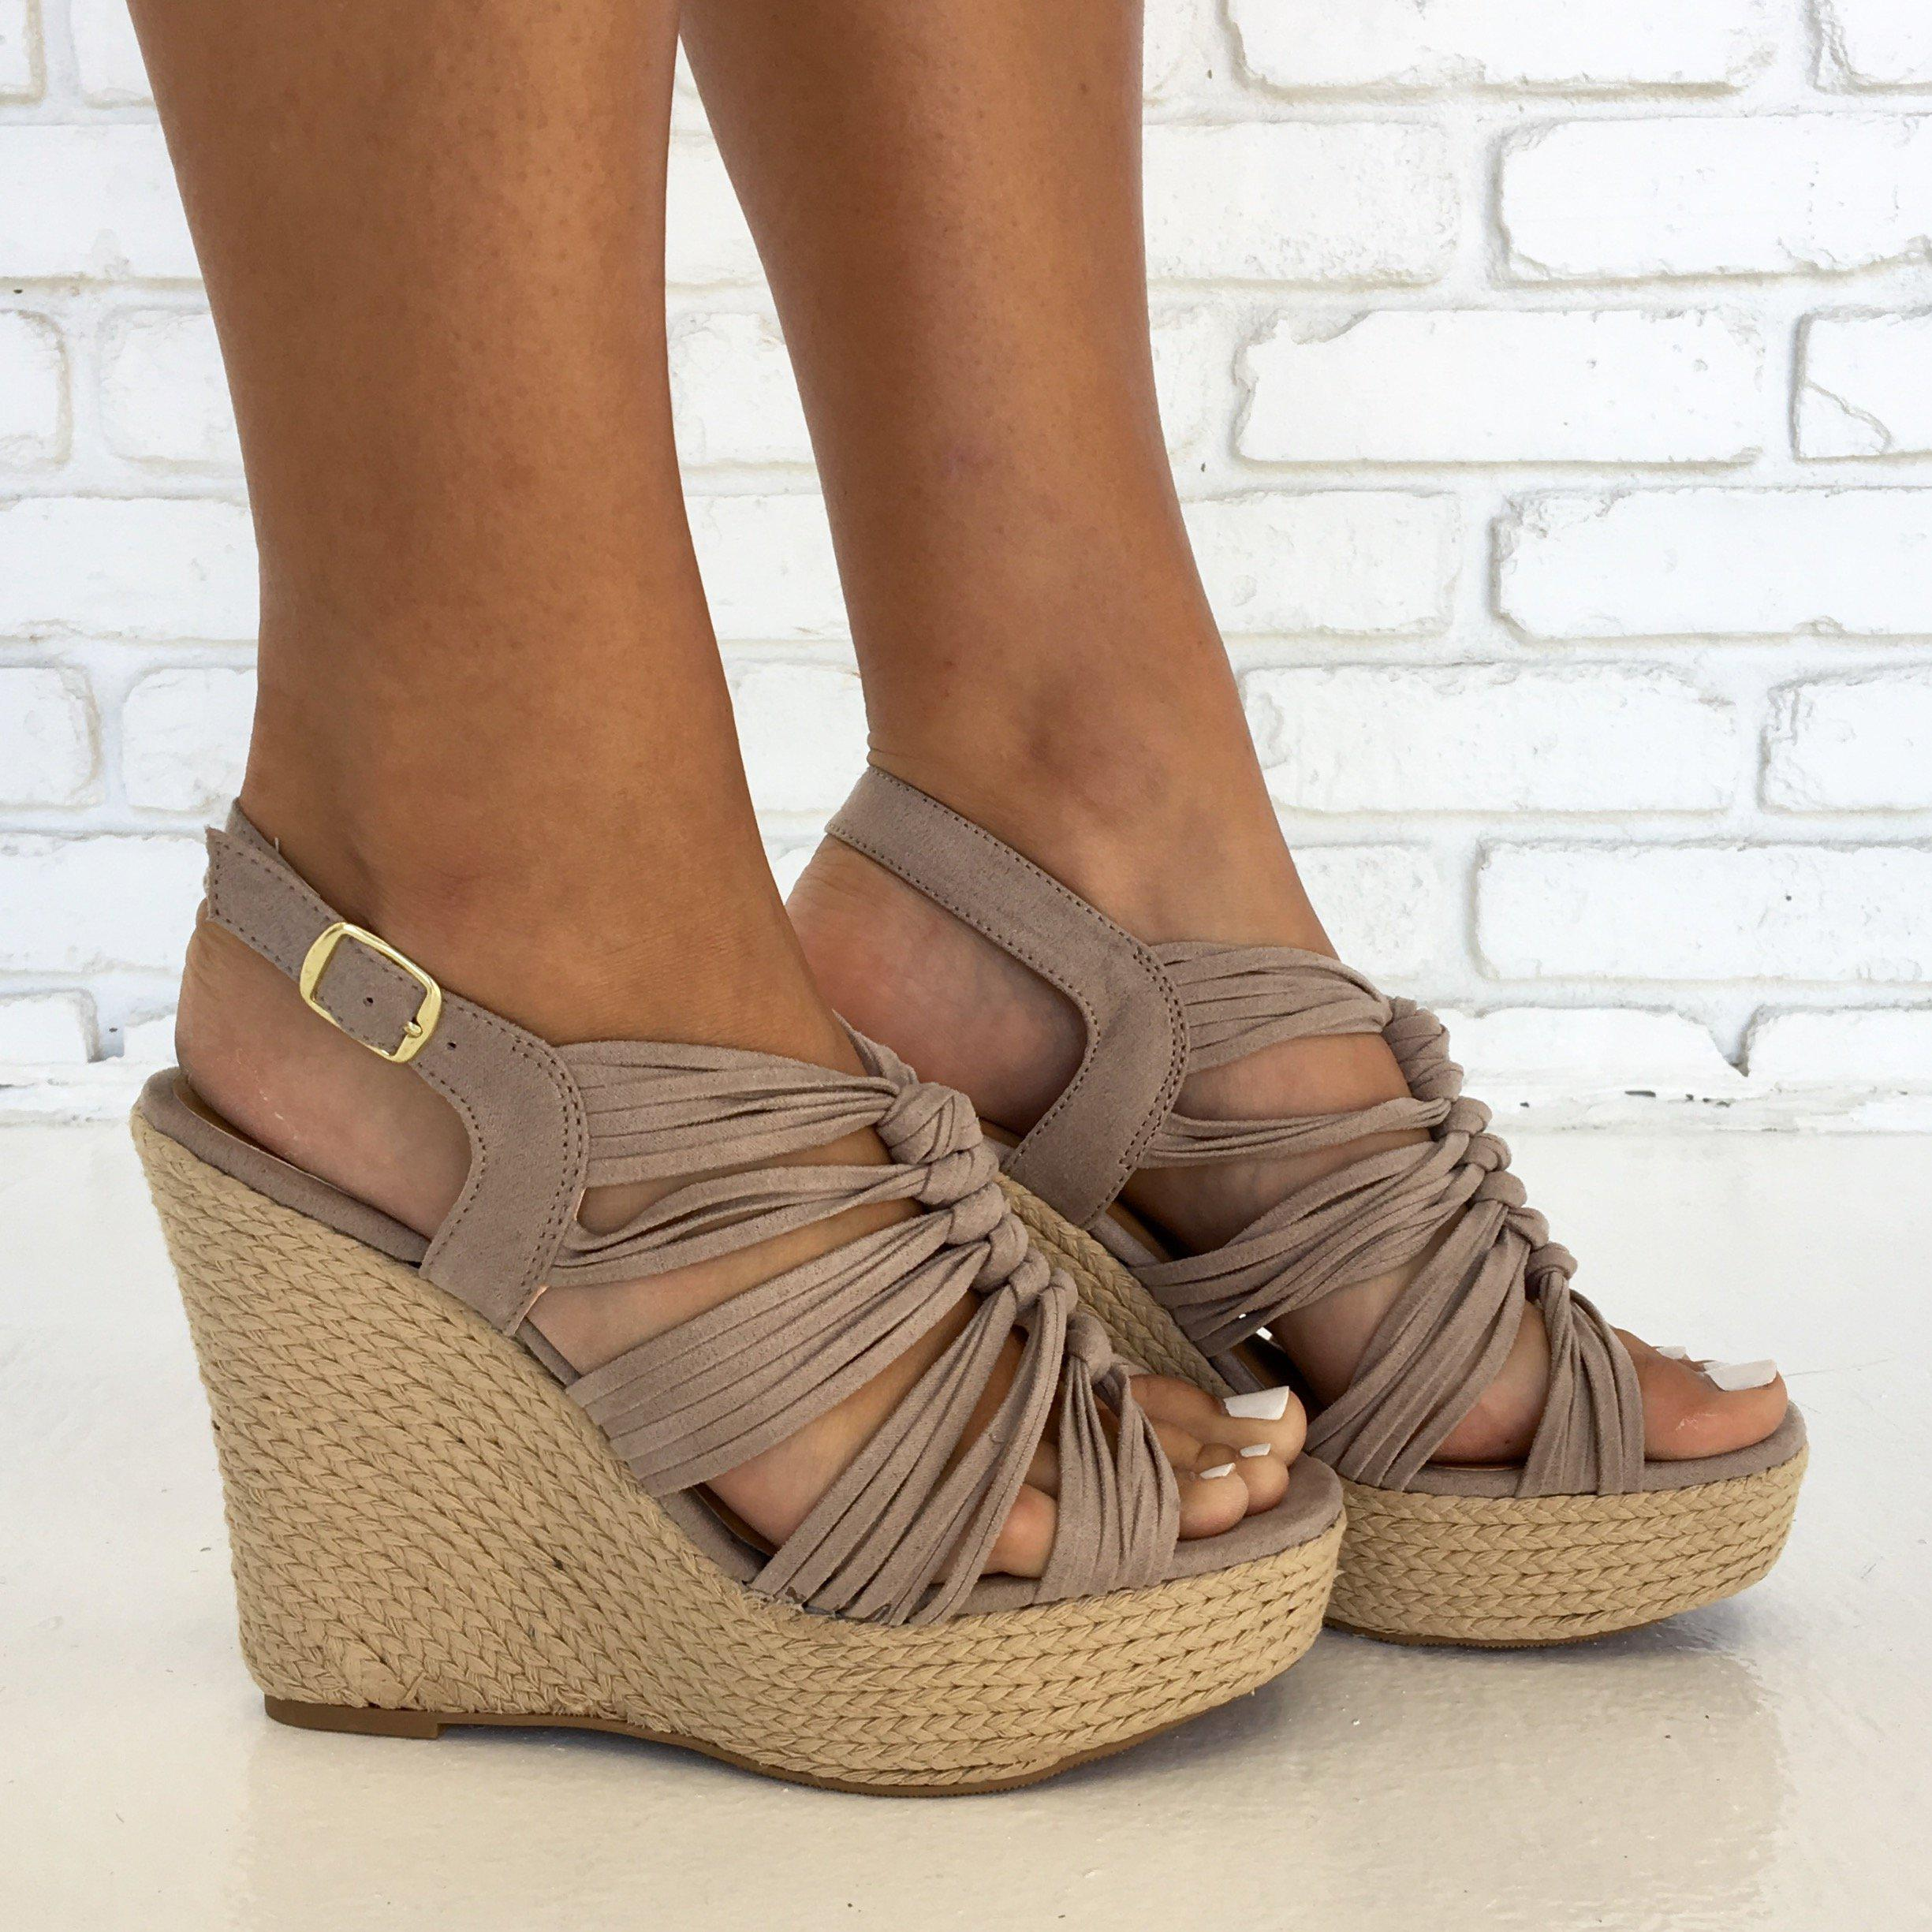 Image of Kelsey Espadrille Wedges in Taupe